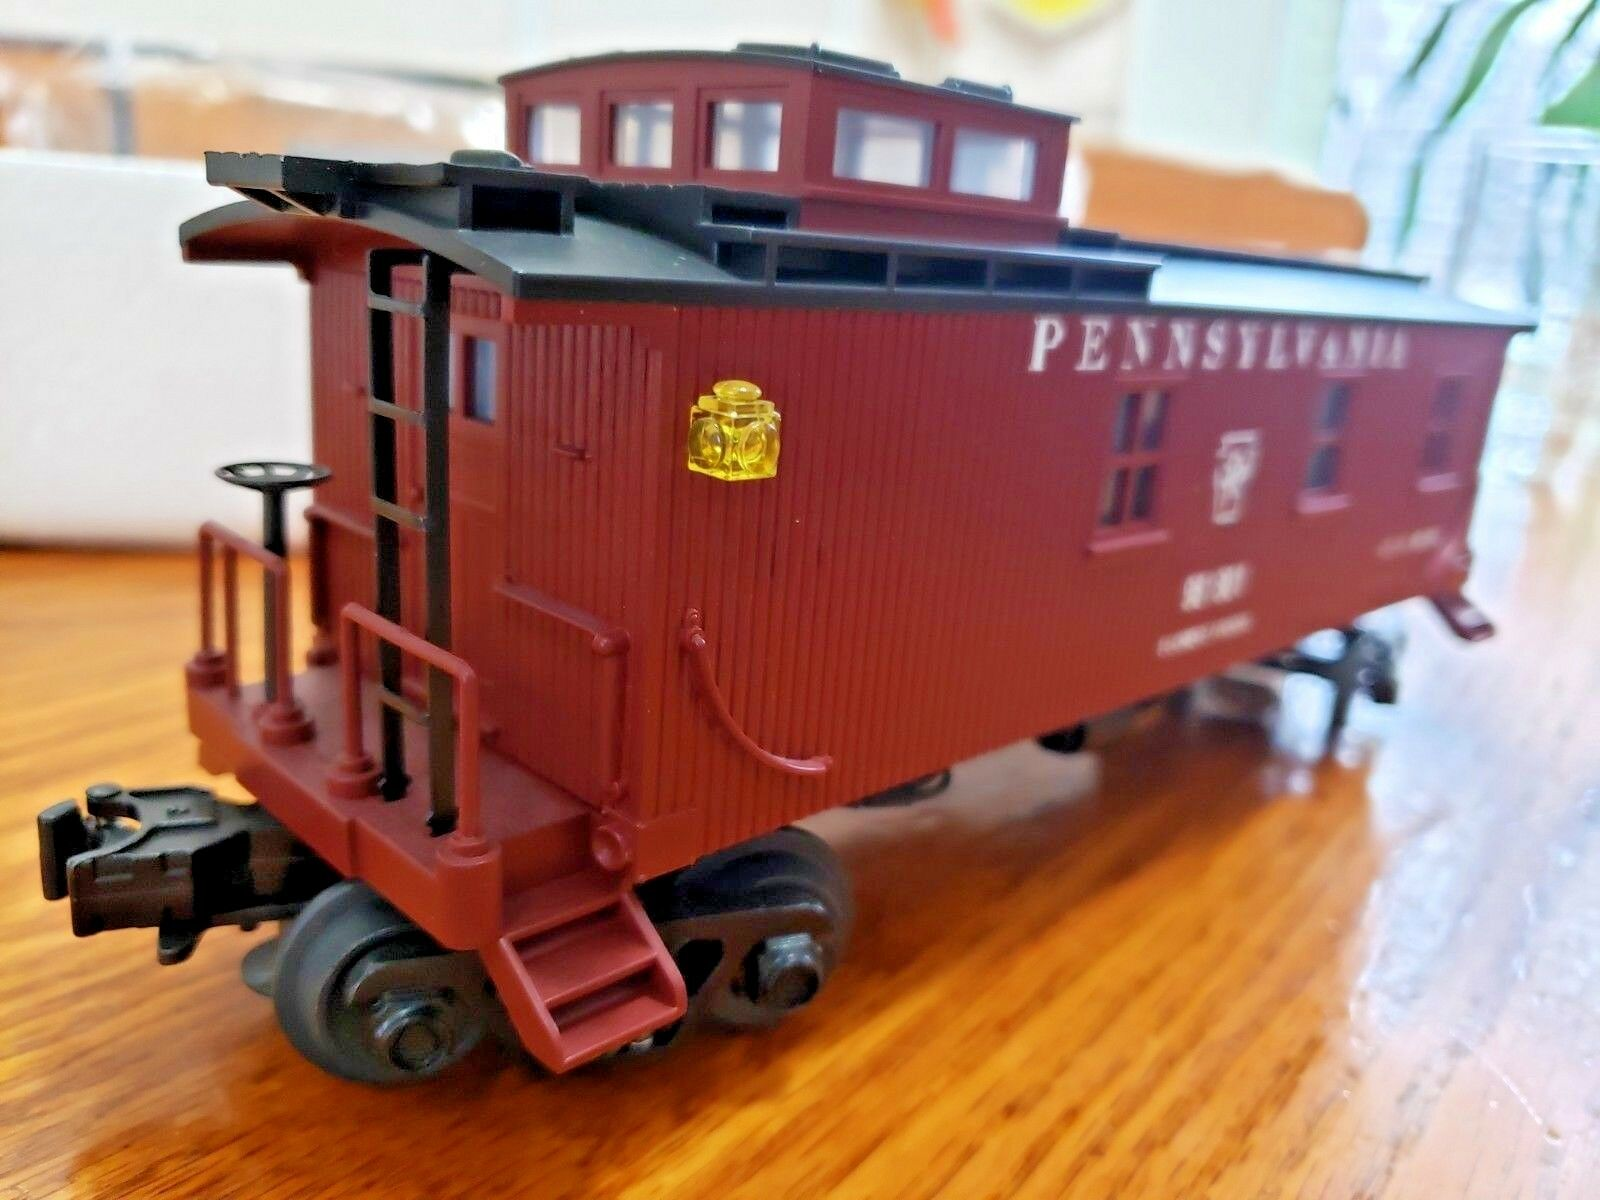 RAIL KING Pennsylvania grado 981801 woodsided furgón de cola M.T.H. Train O-O27 30-7722